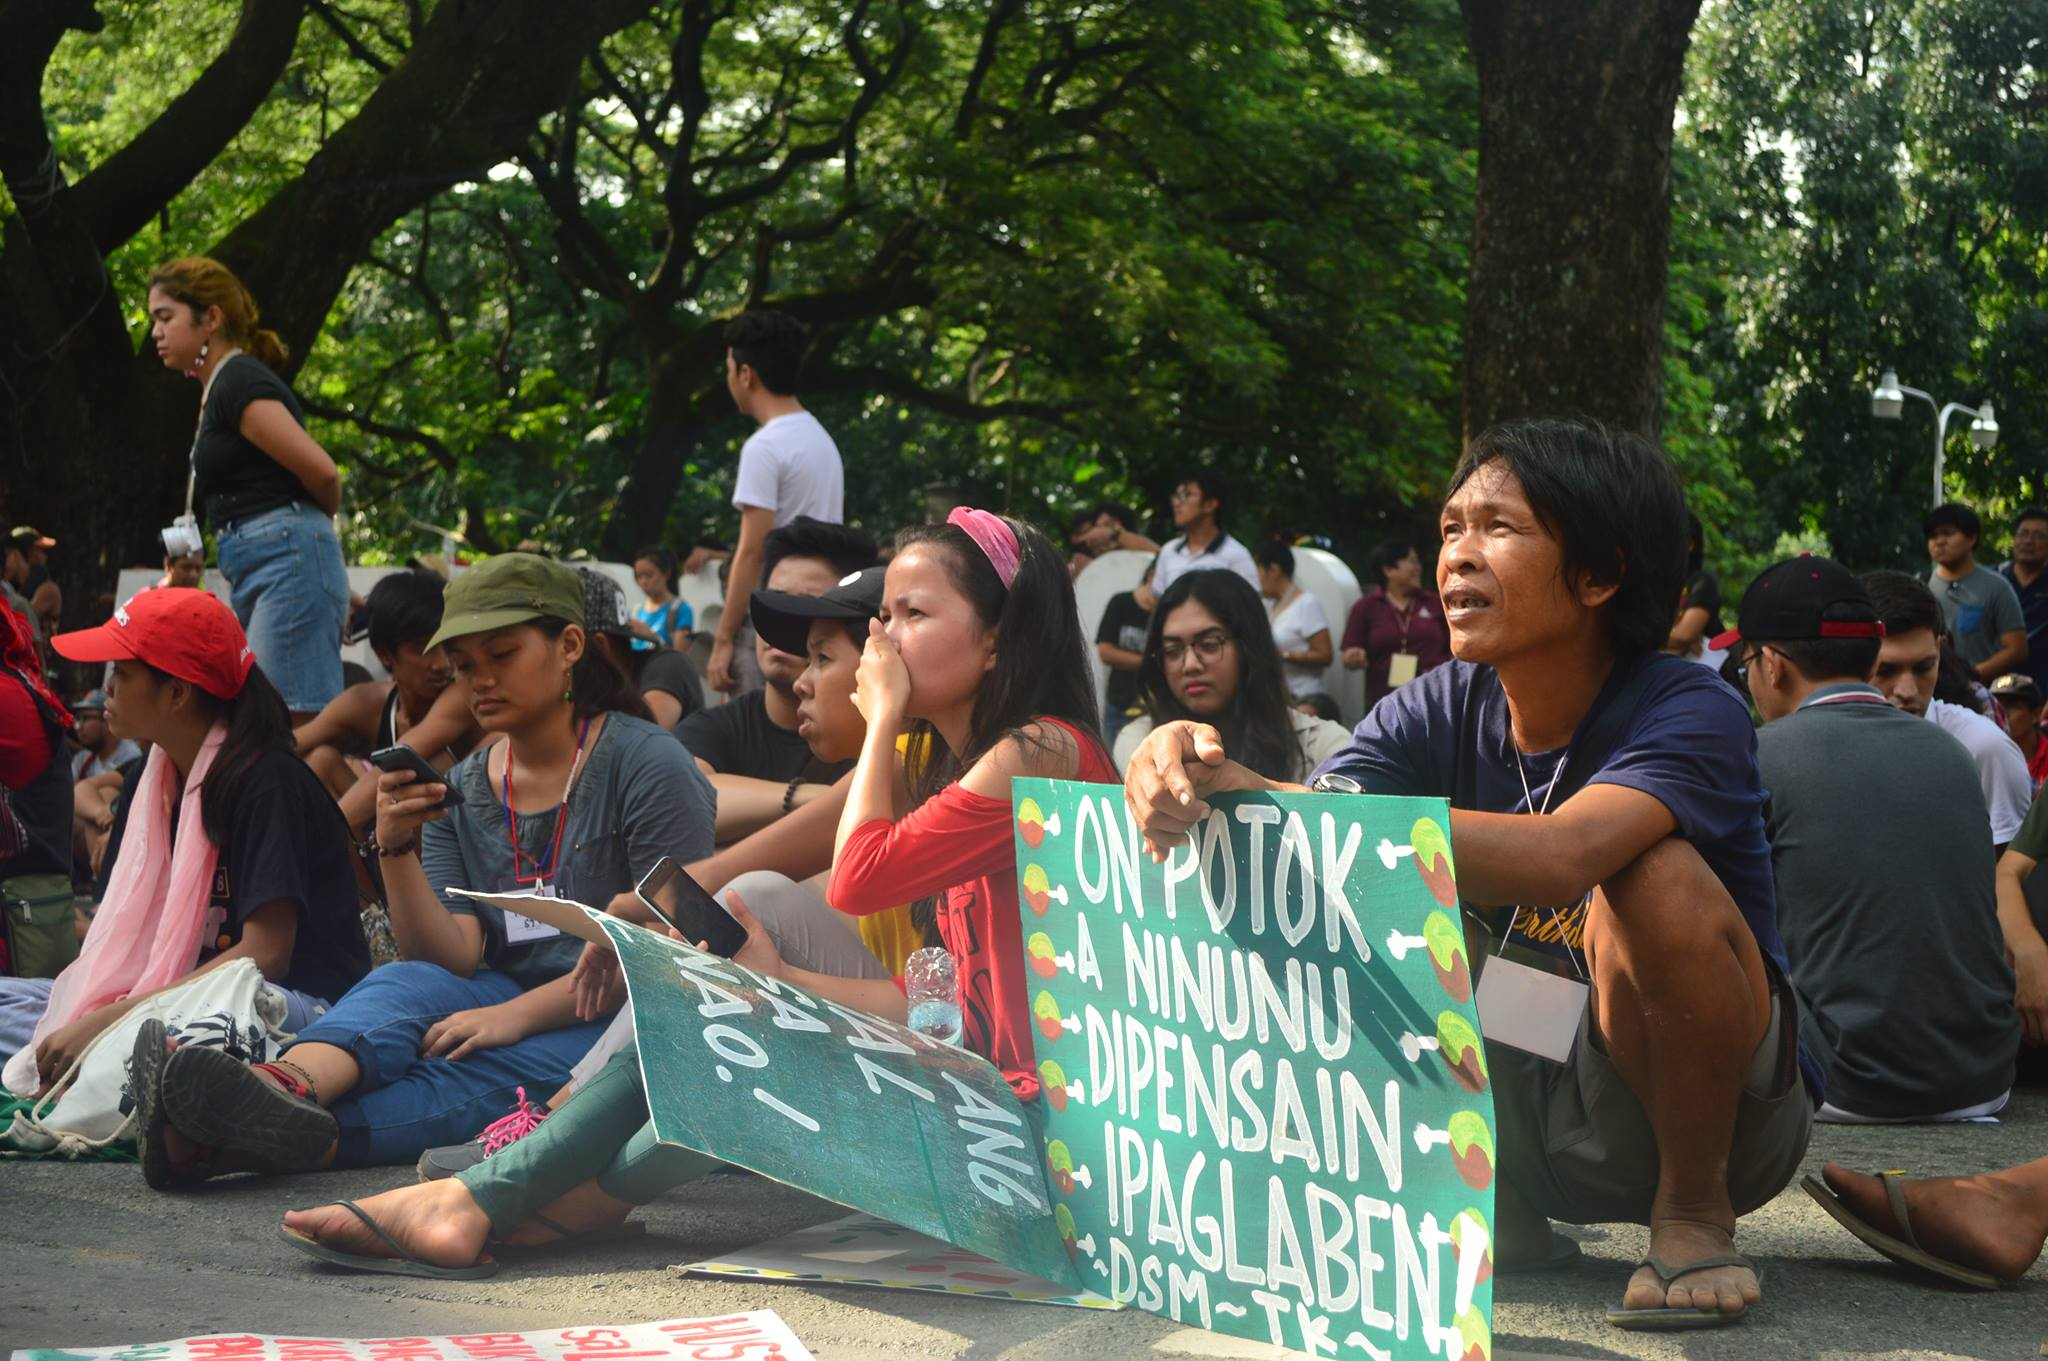 Lakbayanis, UP Diliman unite to end state-sponsored violence against nat'l minorities